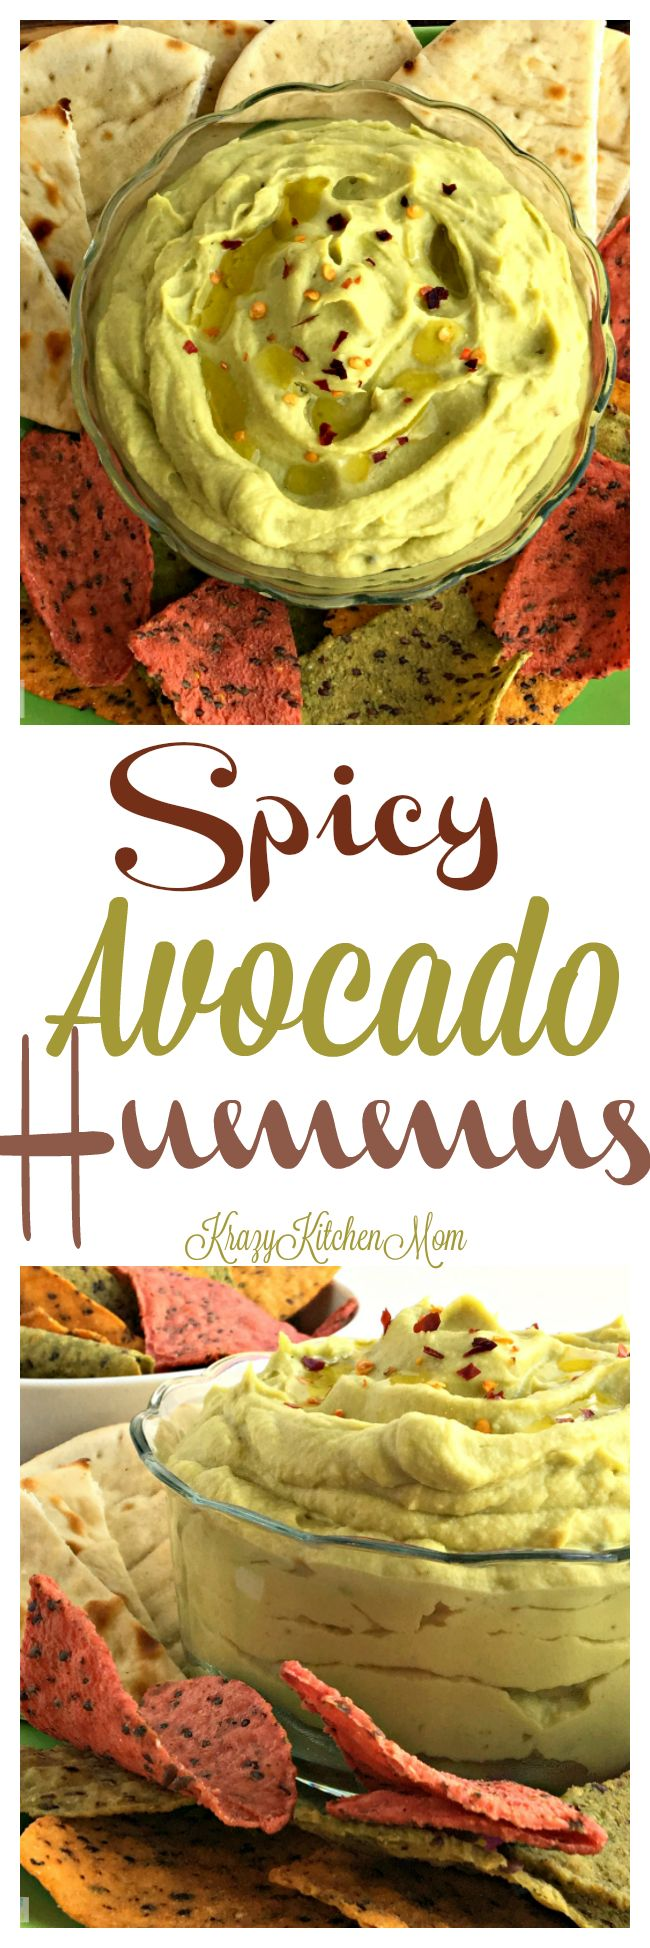 Homemade hummus recipe  Spicy Avocado Hummus